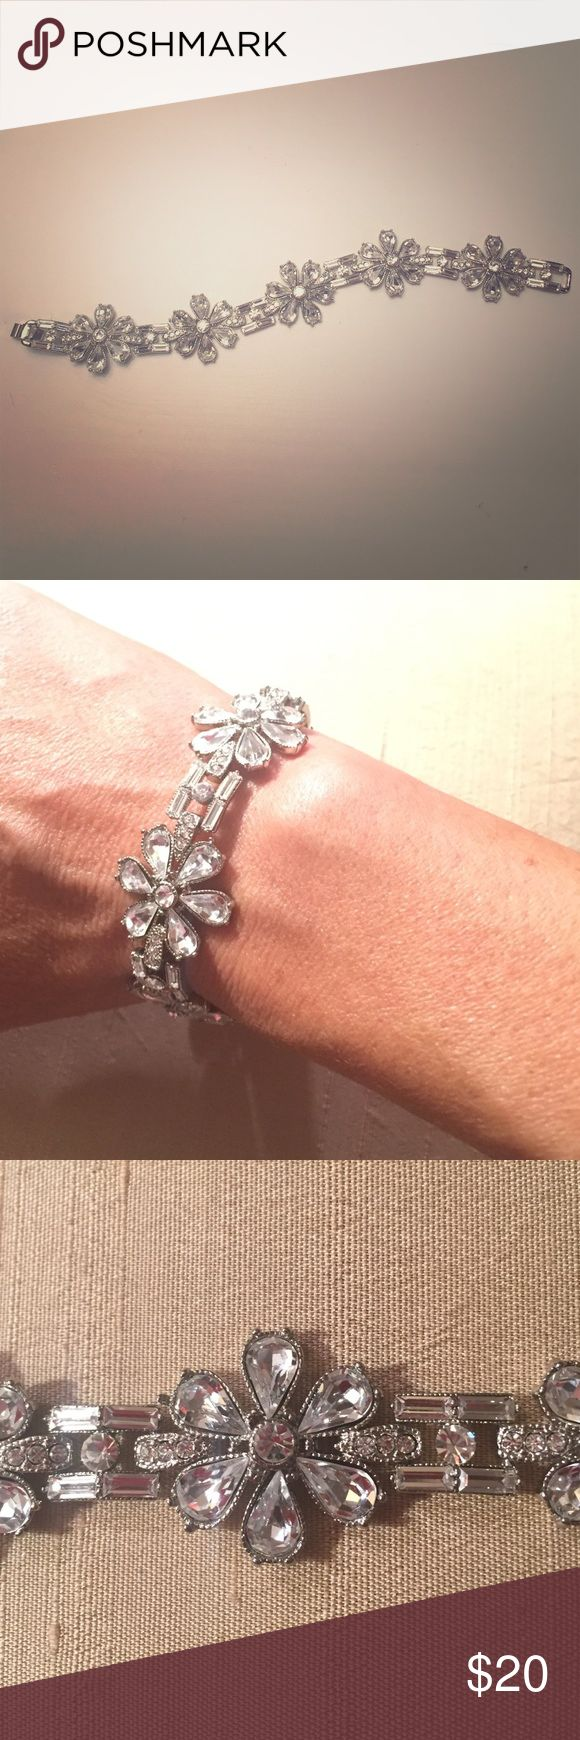 Elegant rhinestone flower link bracelet Elegant rhinestone flower link bracelet. Sparkles beautifully, perfect for a bride-to-be at her wedding celebration. Timeless and classy. Jewelry Bracelets